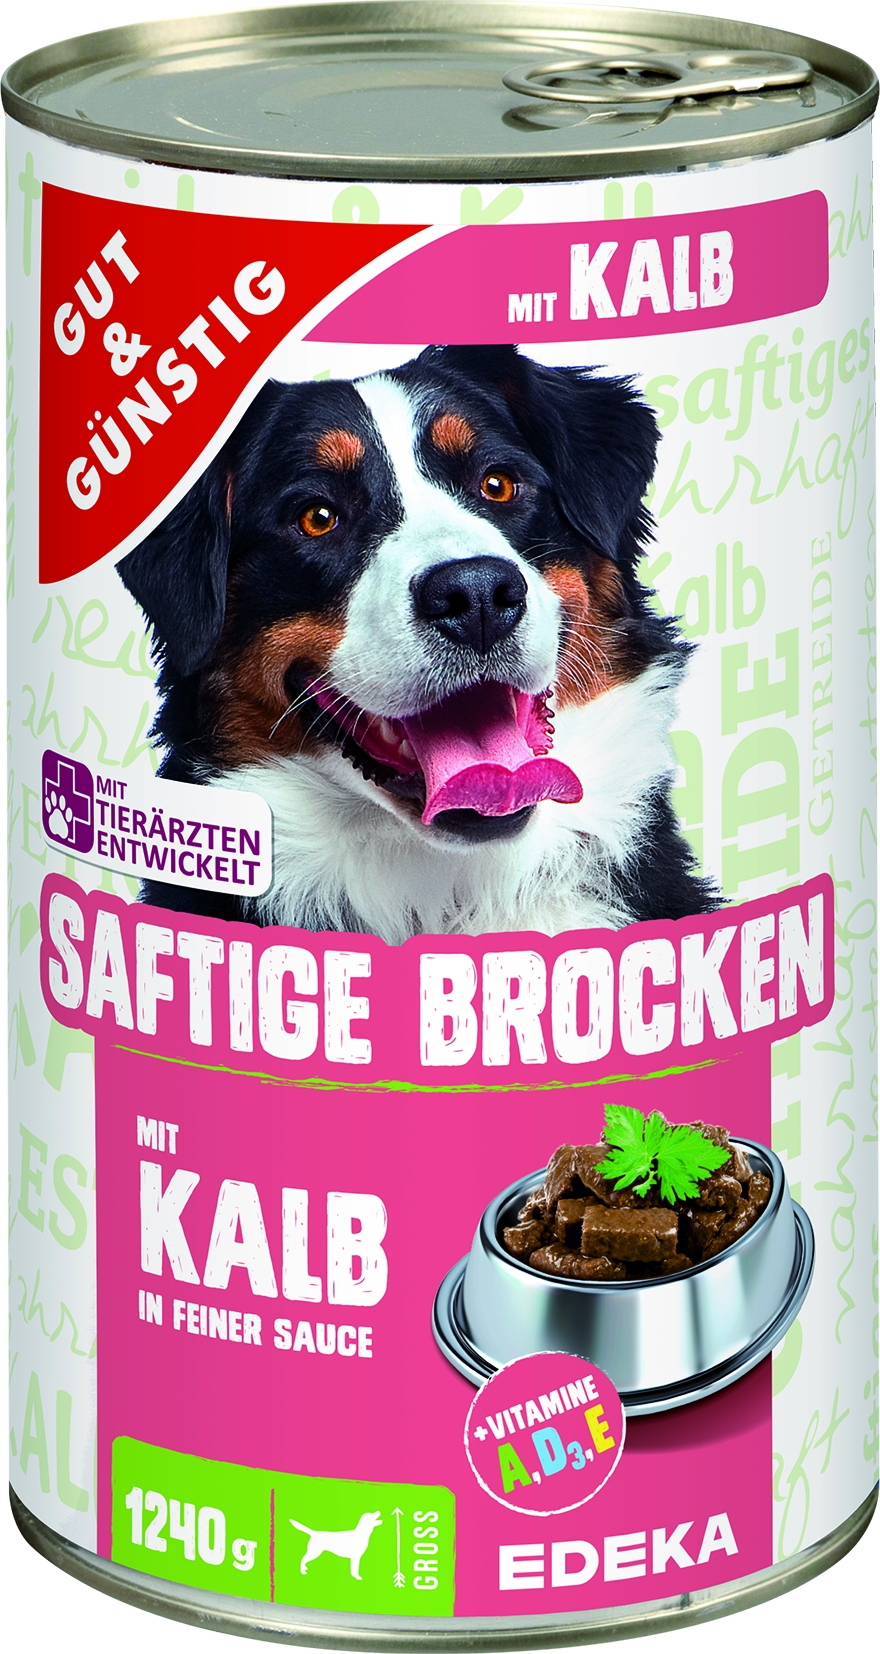 Dog Saftige Brocken Kalb